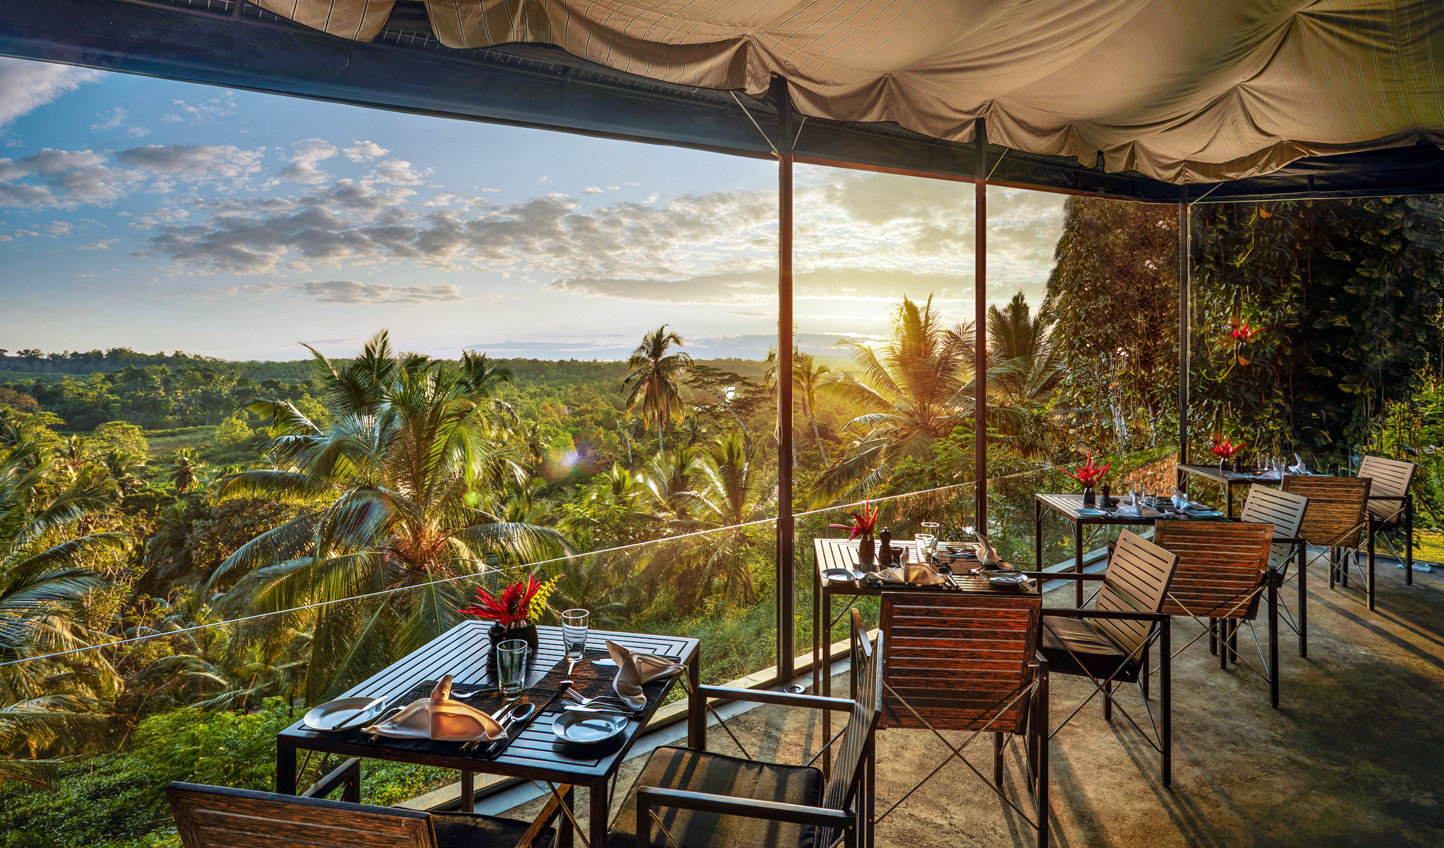 Dine with a view out across the estate